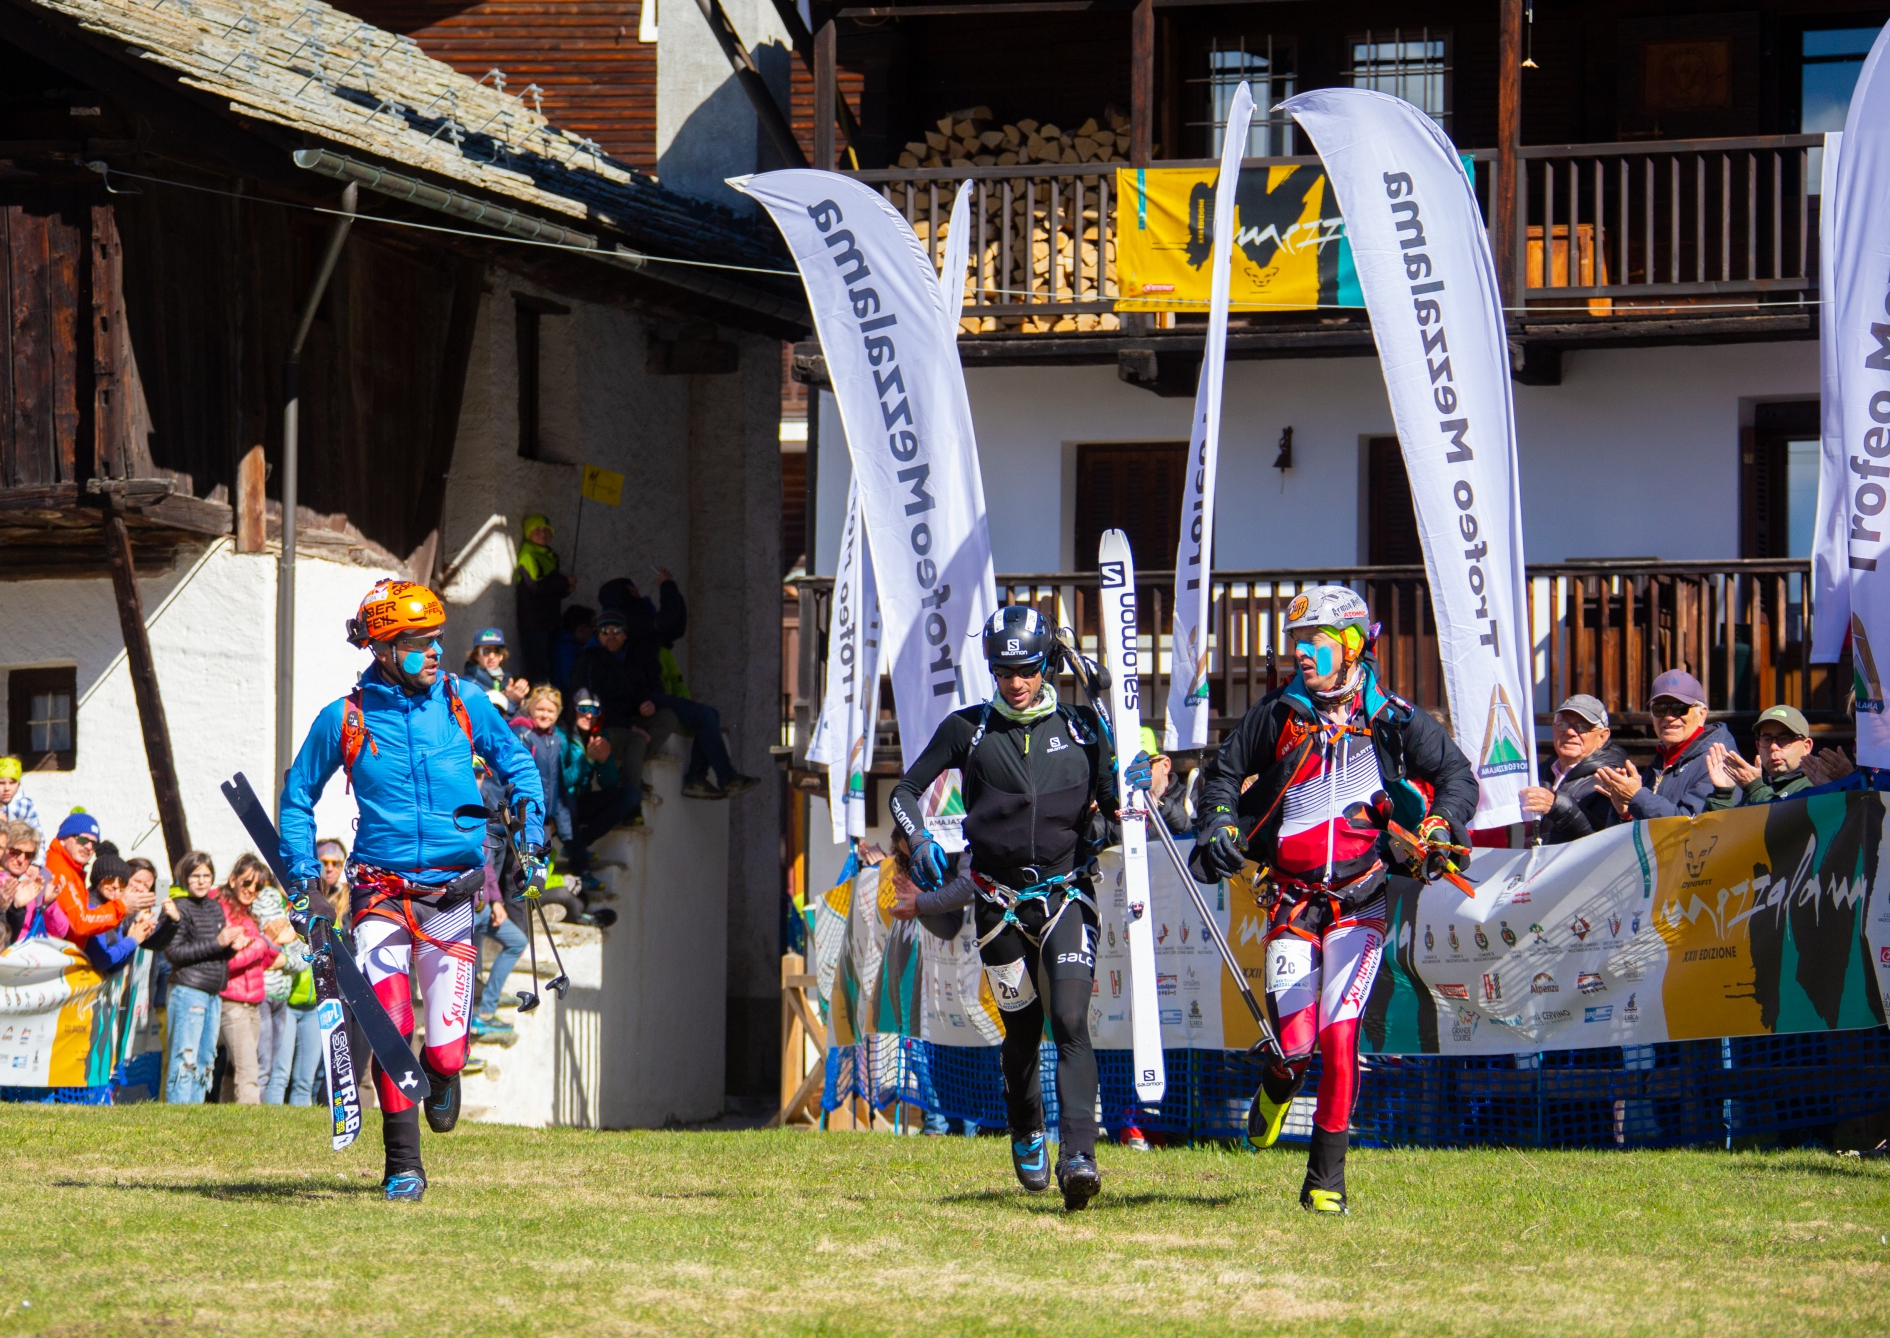 Podium finish for Kilian Jornet in the legendary Mezzalama Trophy alongside Armin Höfl and Jakob Herrmann